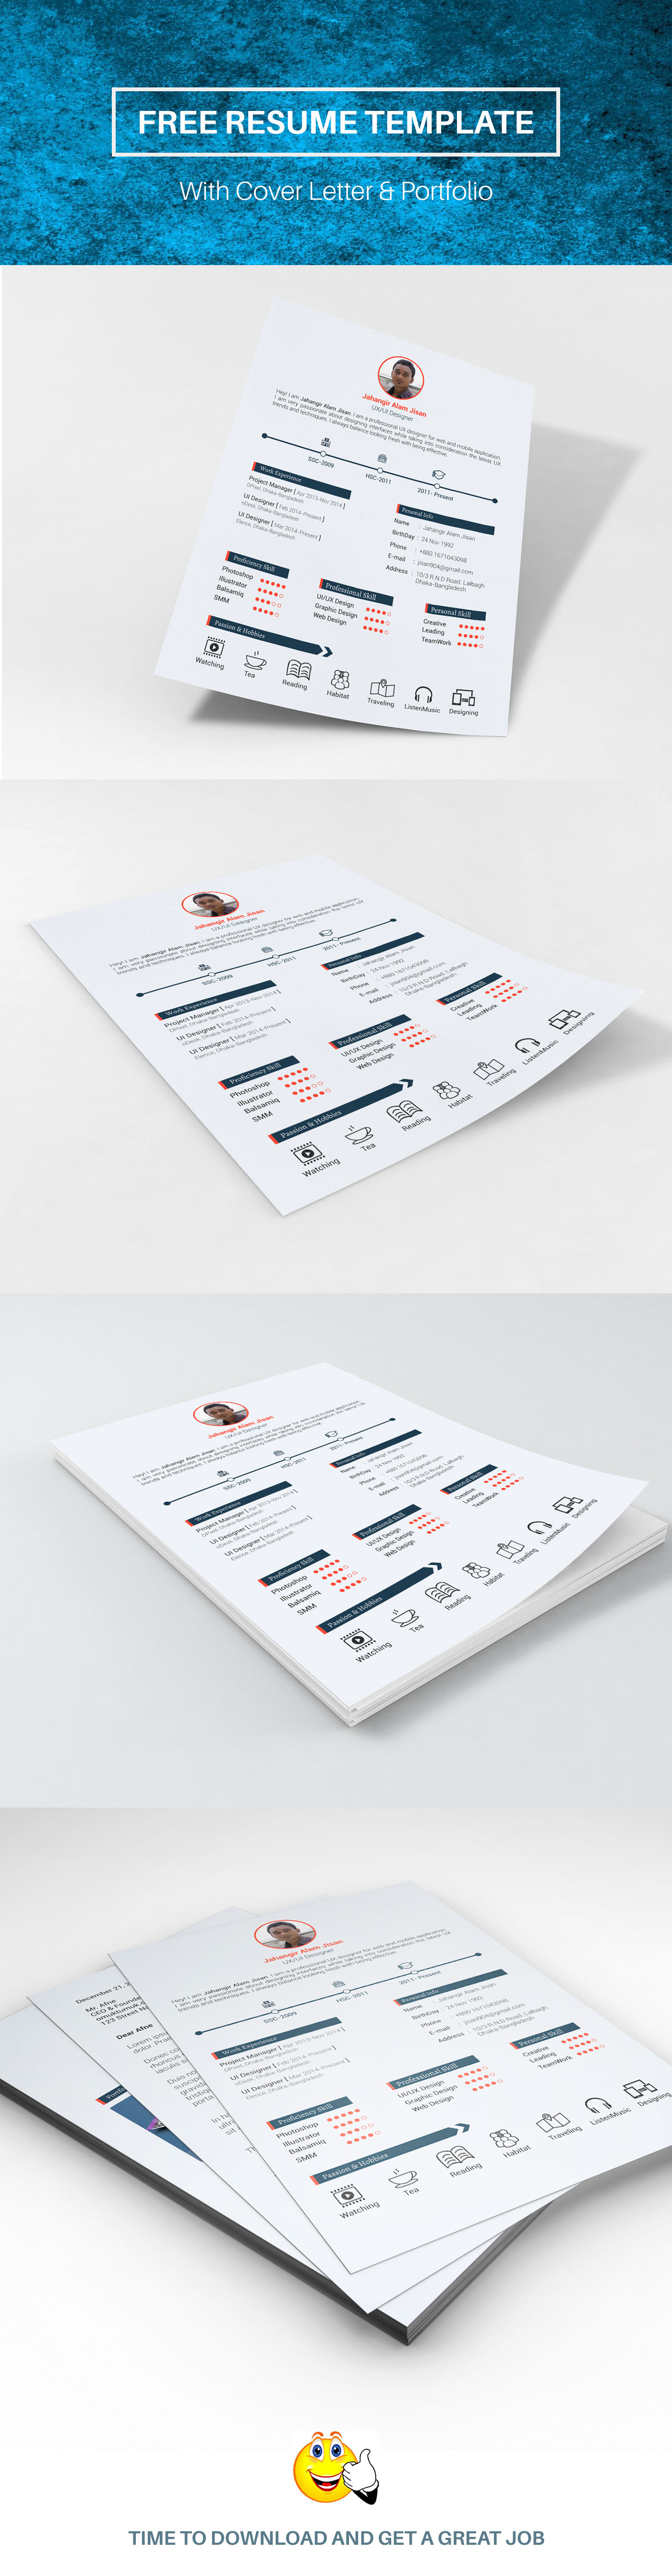 free download resume template with cover letter and portfolio